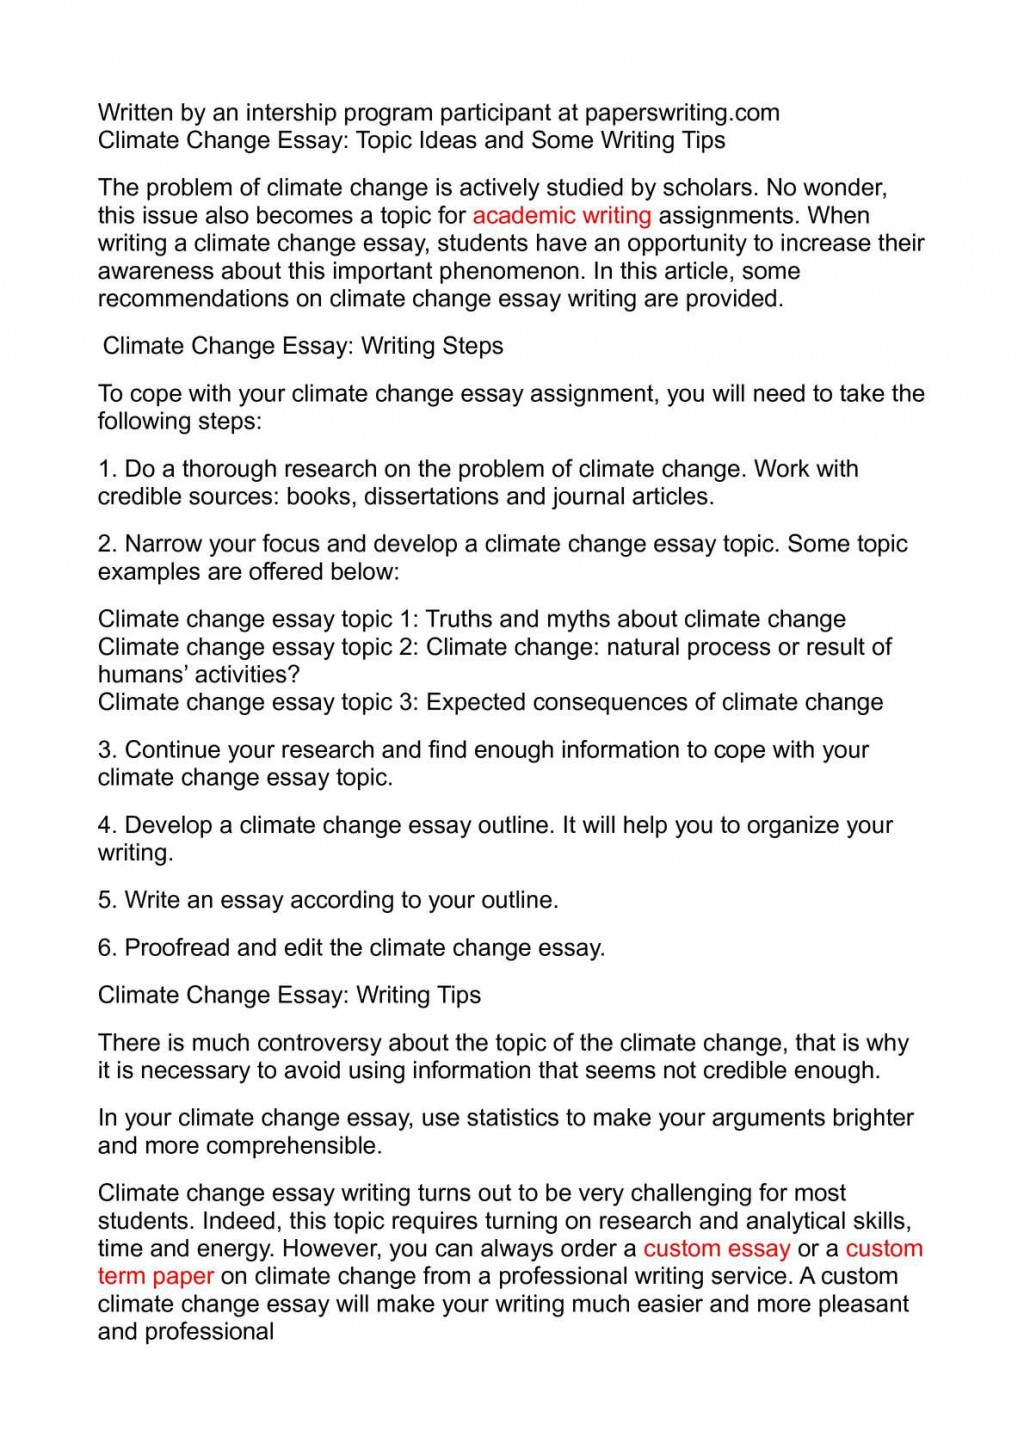 012 Climate Change Essay Topics Uncategorized Global Warming Topic Ways To St Oracleboss Research Paper20 Paper Unusual Ideas Activities For High School Students Unique History Developmental Psychology Large